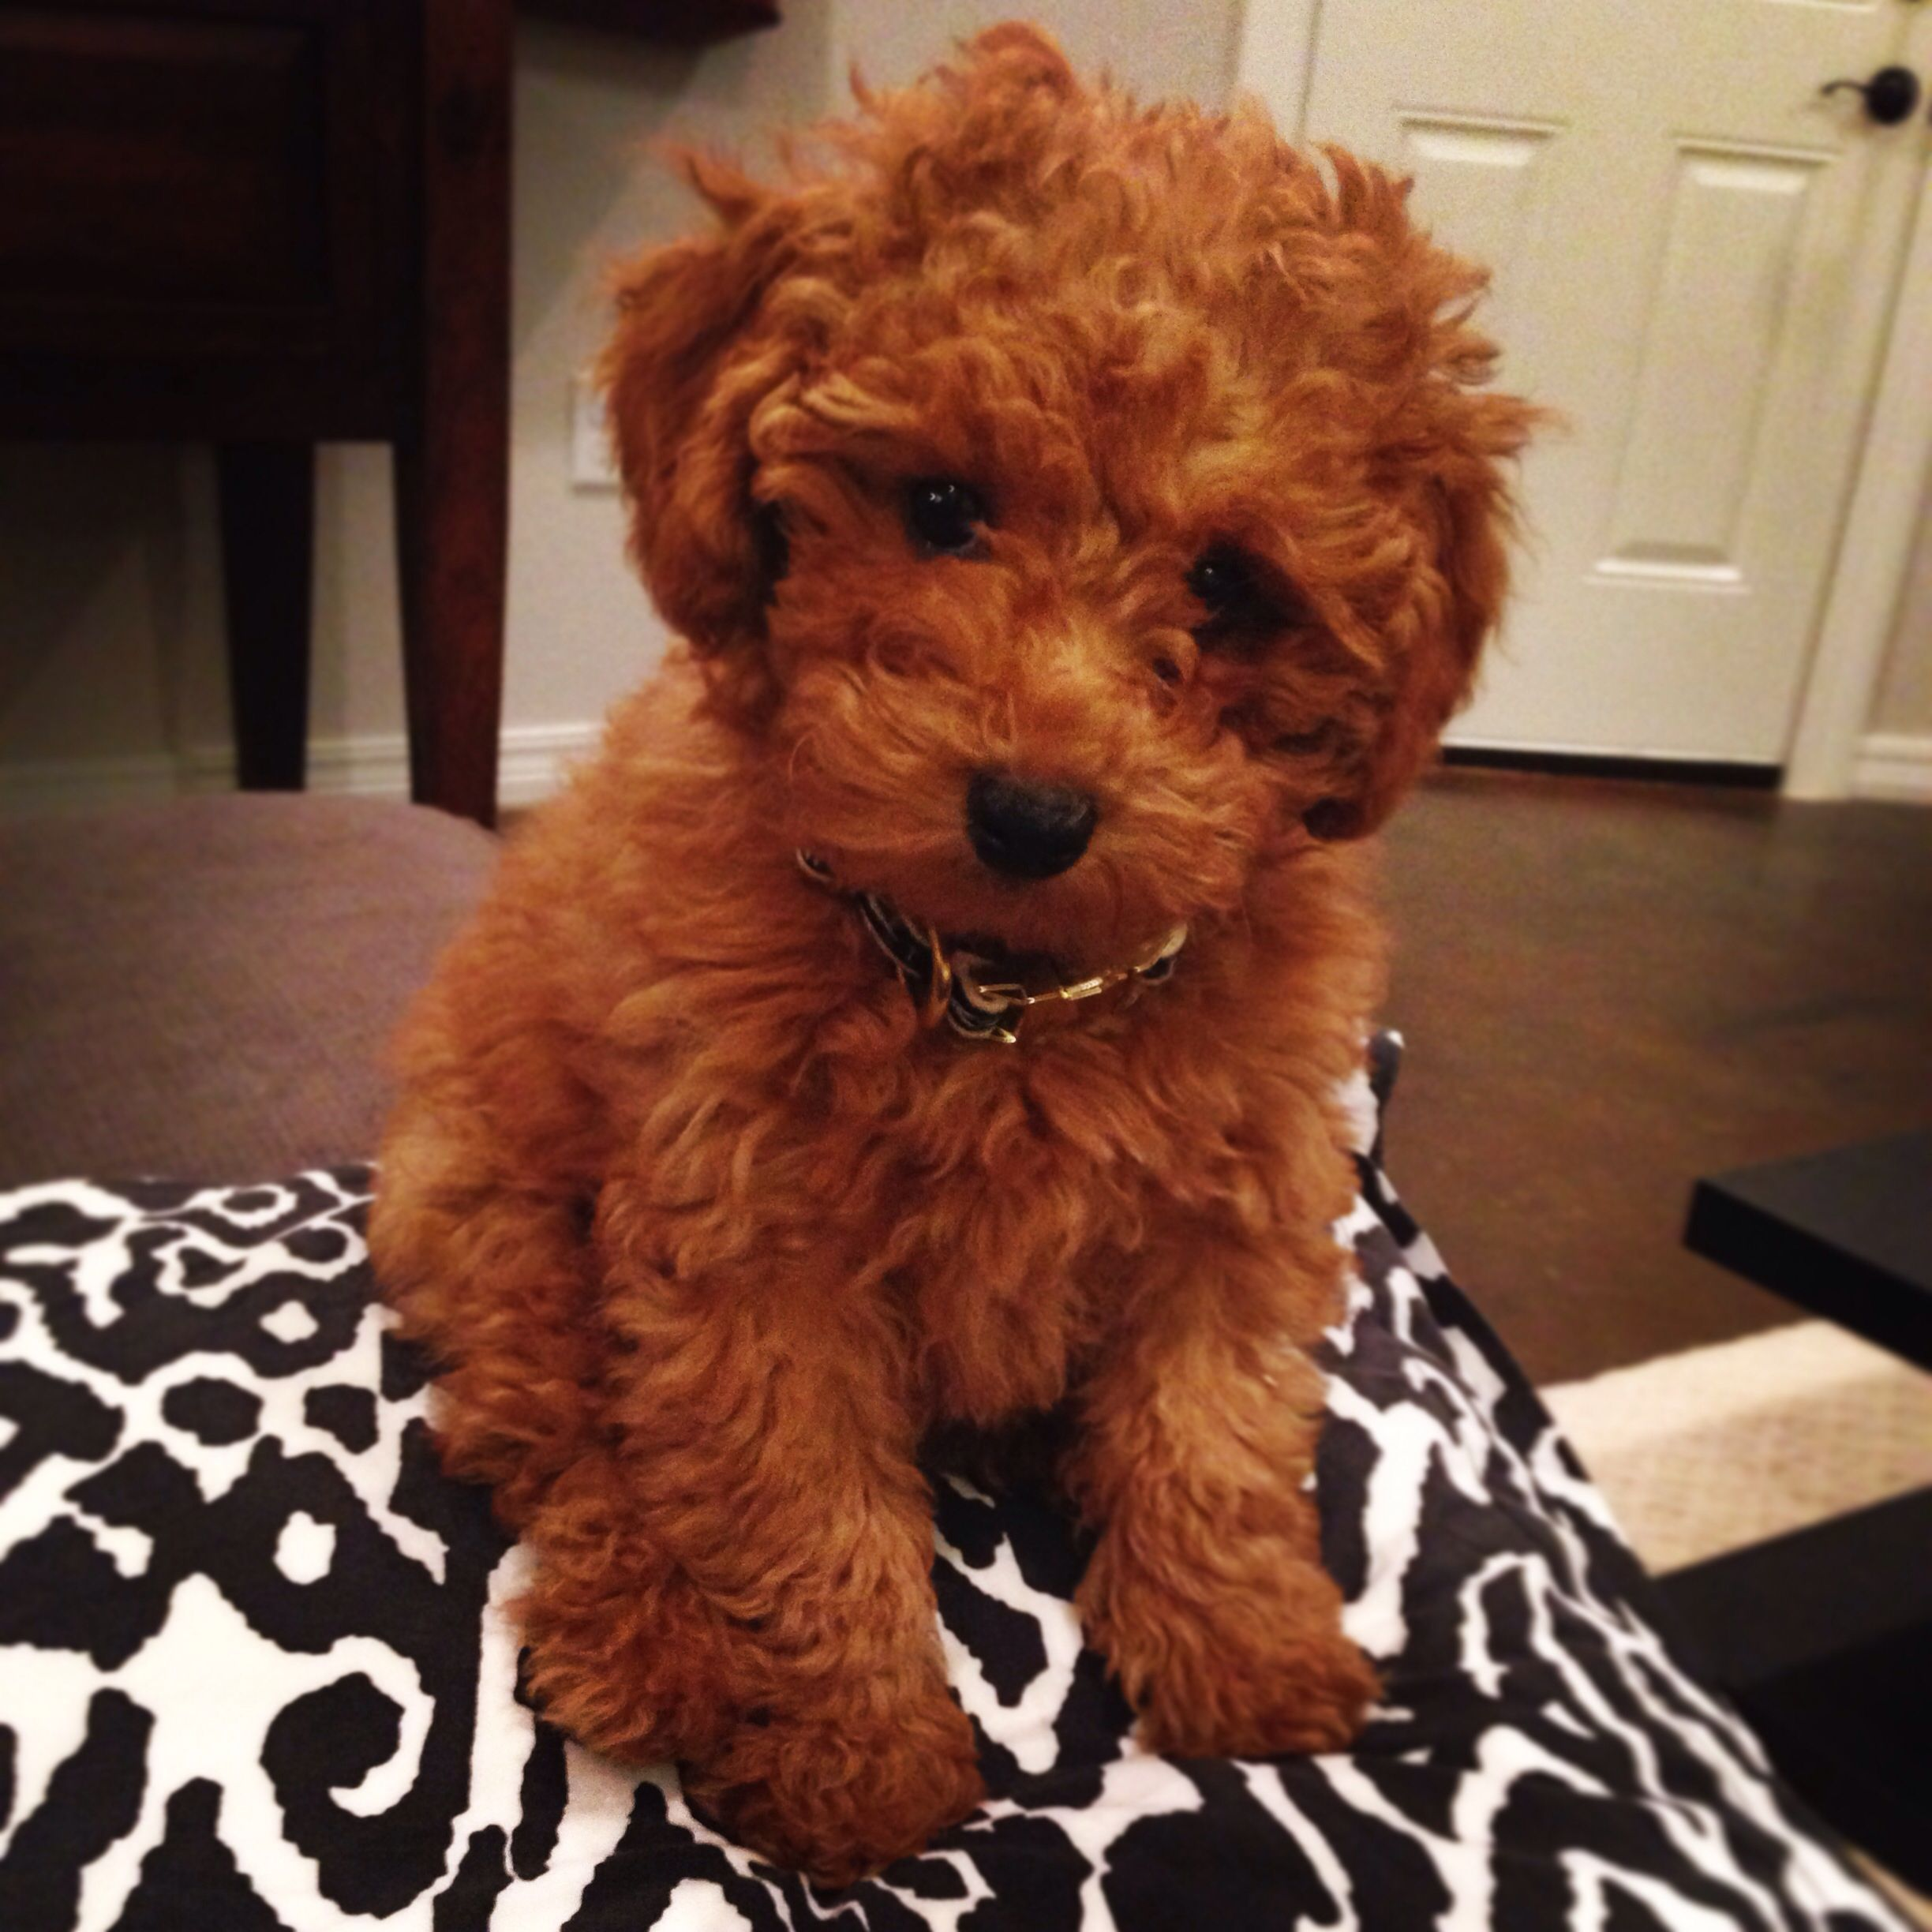 Pin By Rosa Hastings On Puppy Love Toy Goldendoodle Mini Goldendoodle Puppies Fox Terrier Puppy